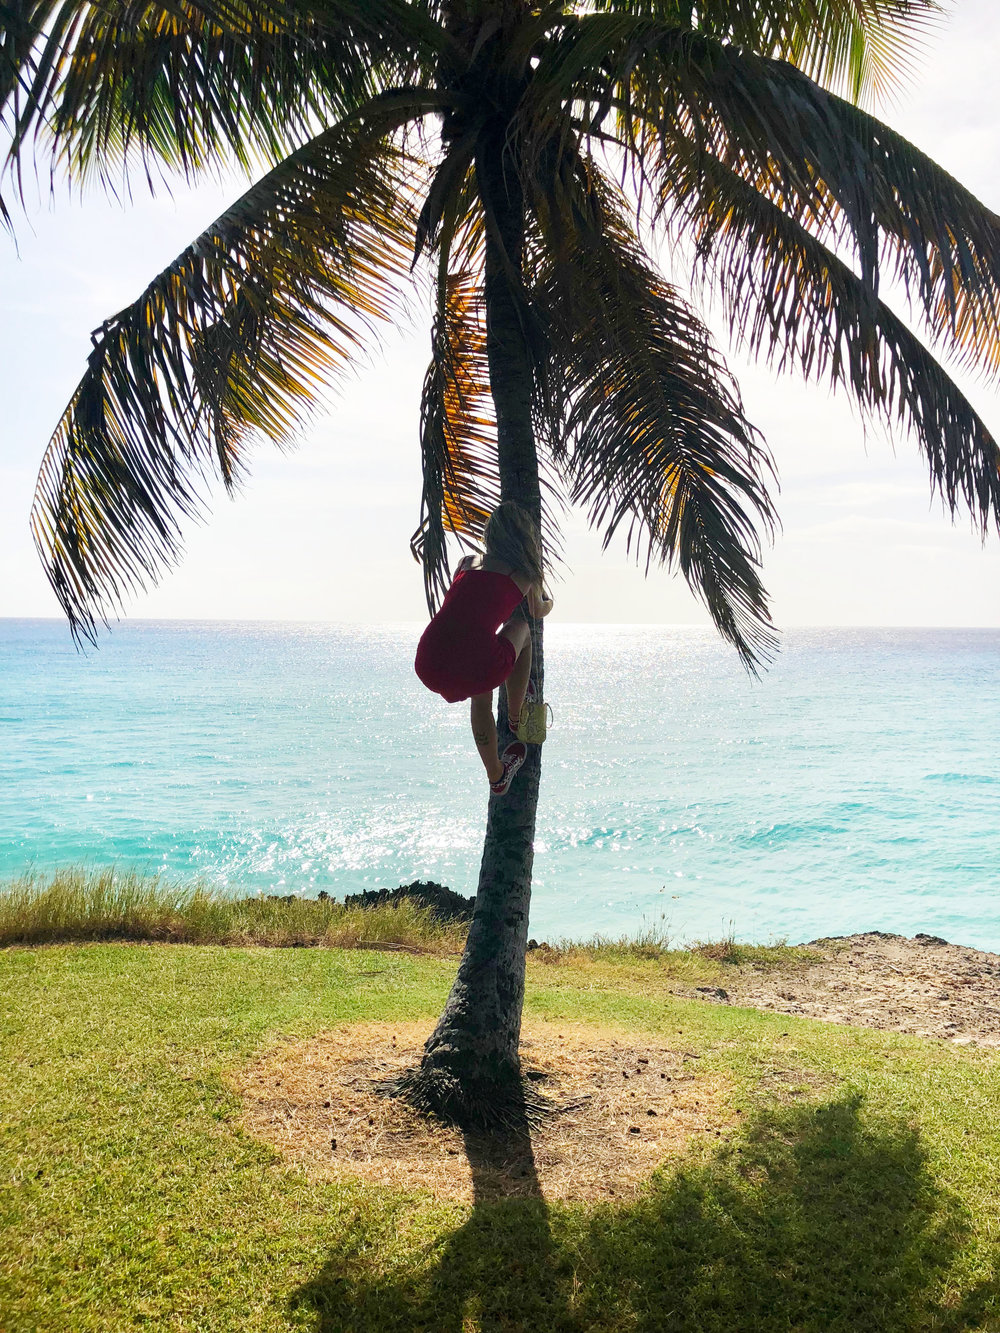 A photo of me climbing my favorite palm tree in Barbados, January 2018